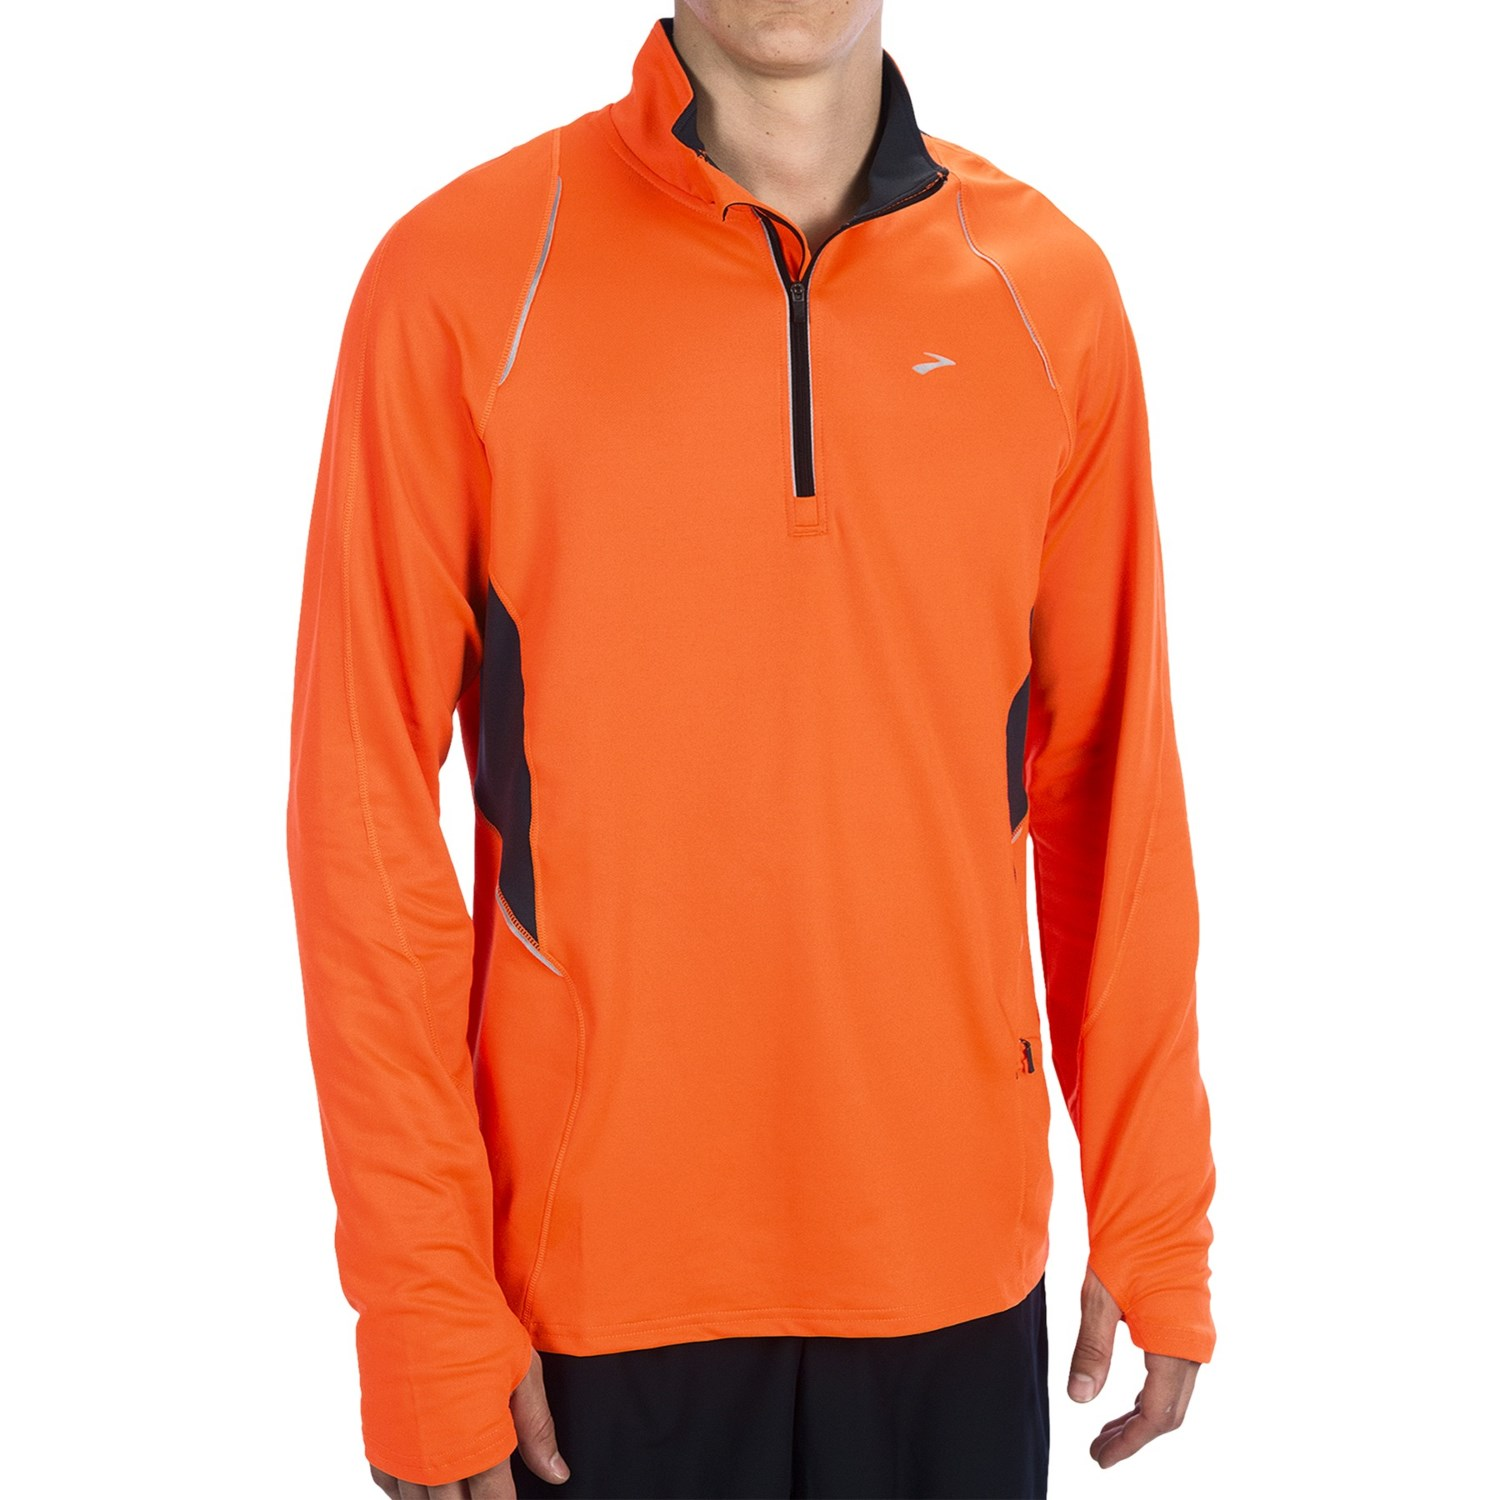 Brooks nightlife infiniti pullover shirt zip neck long for Mens long sleeve pullover shirts